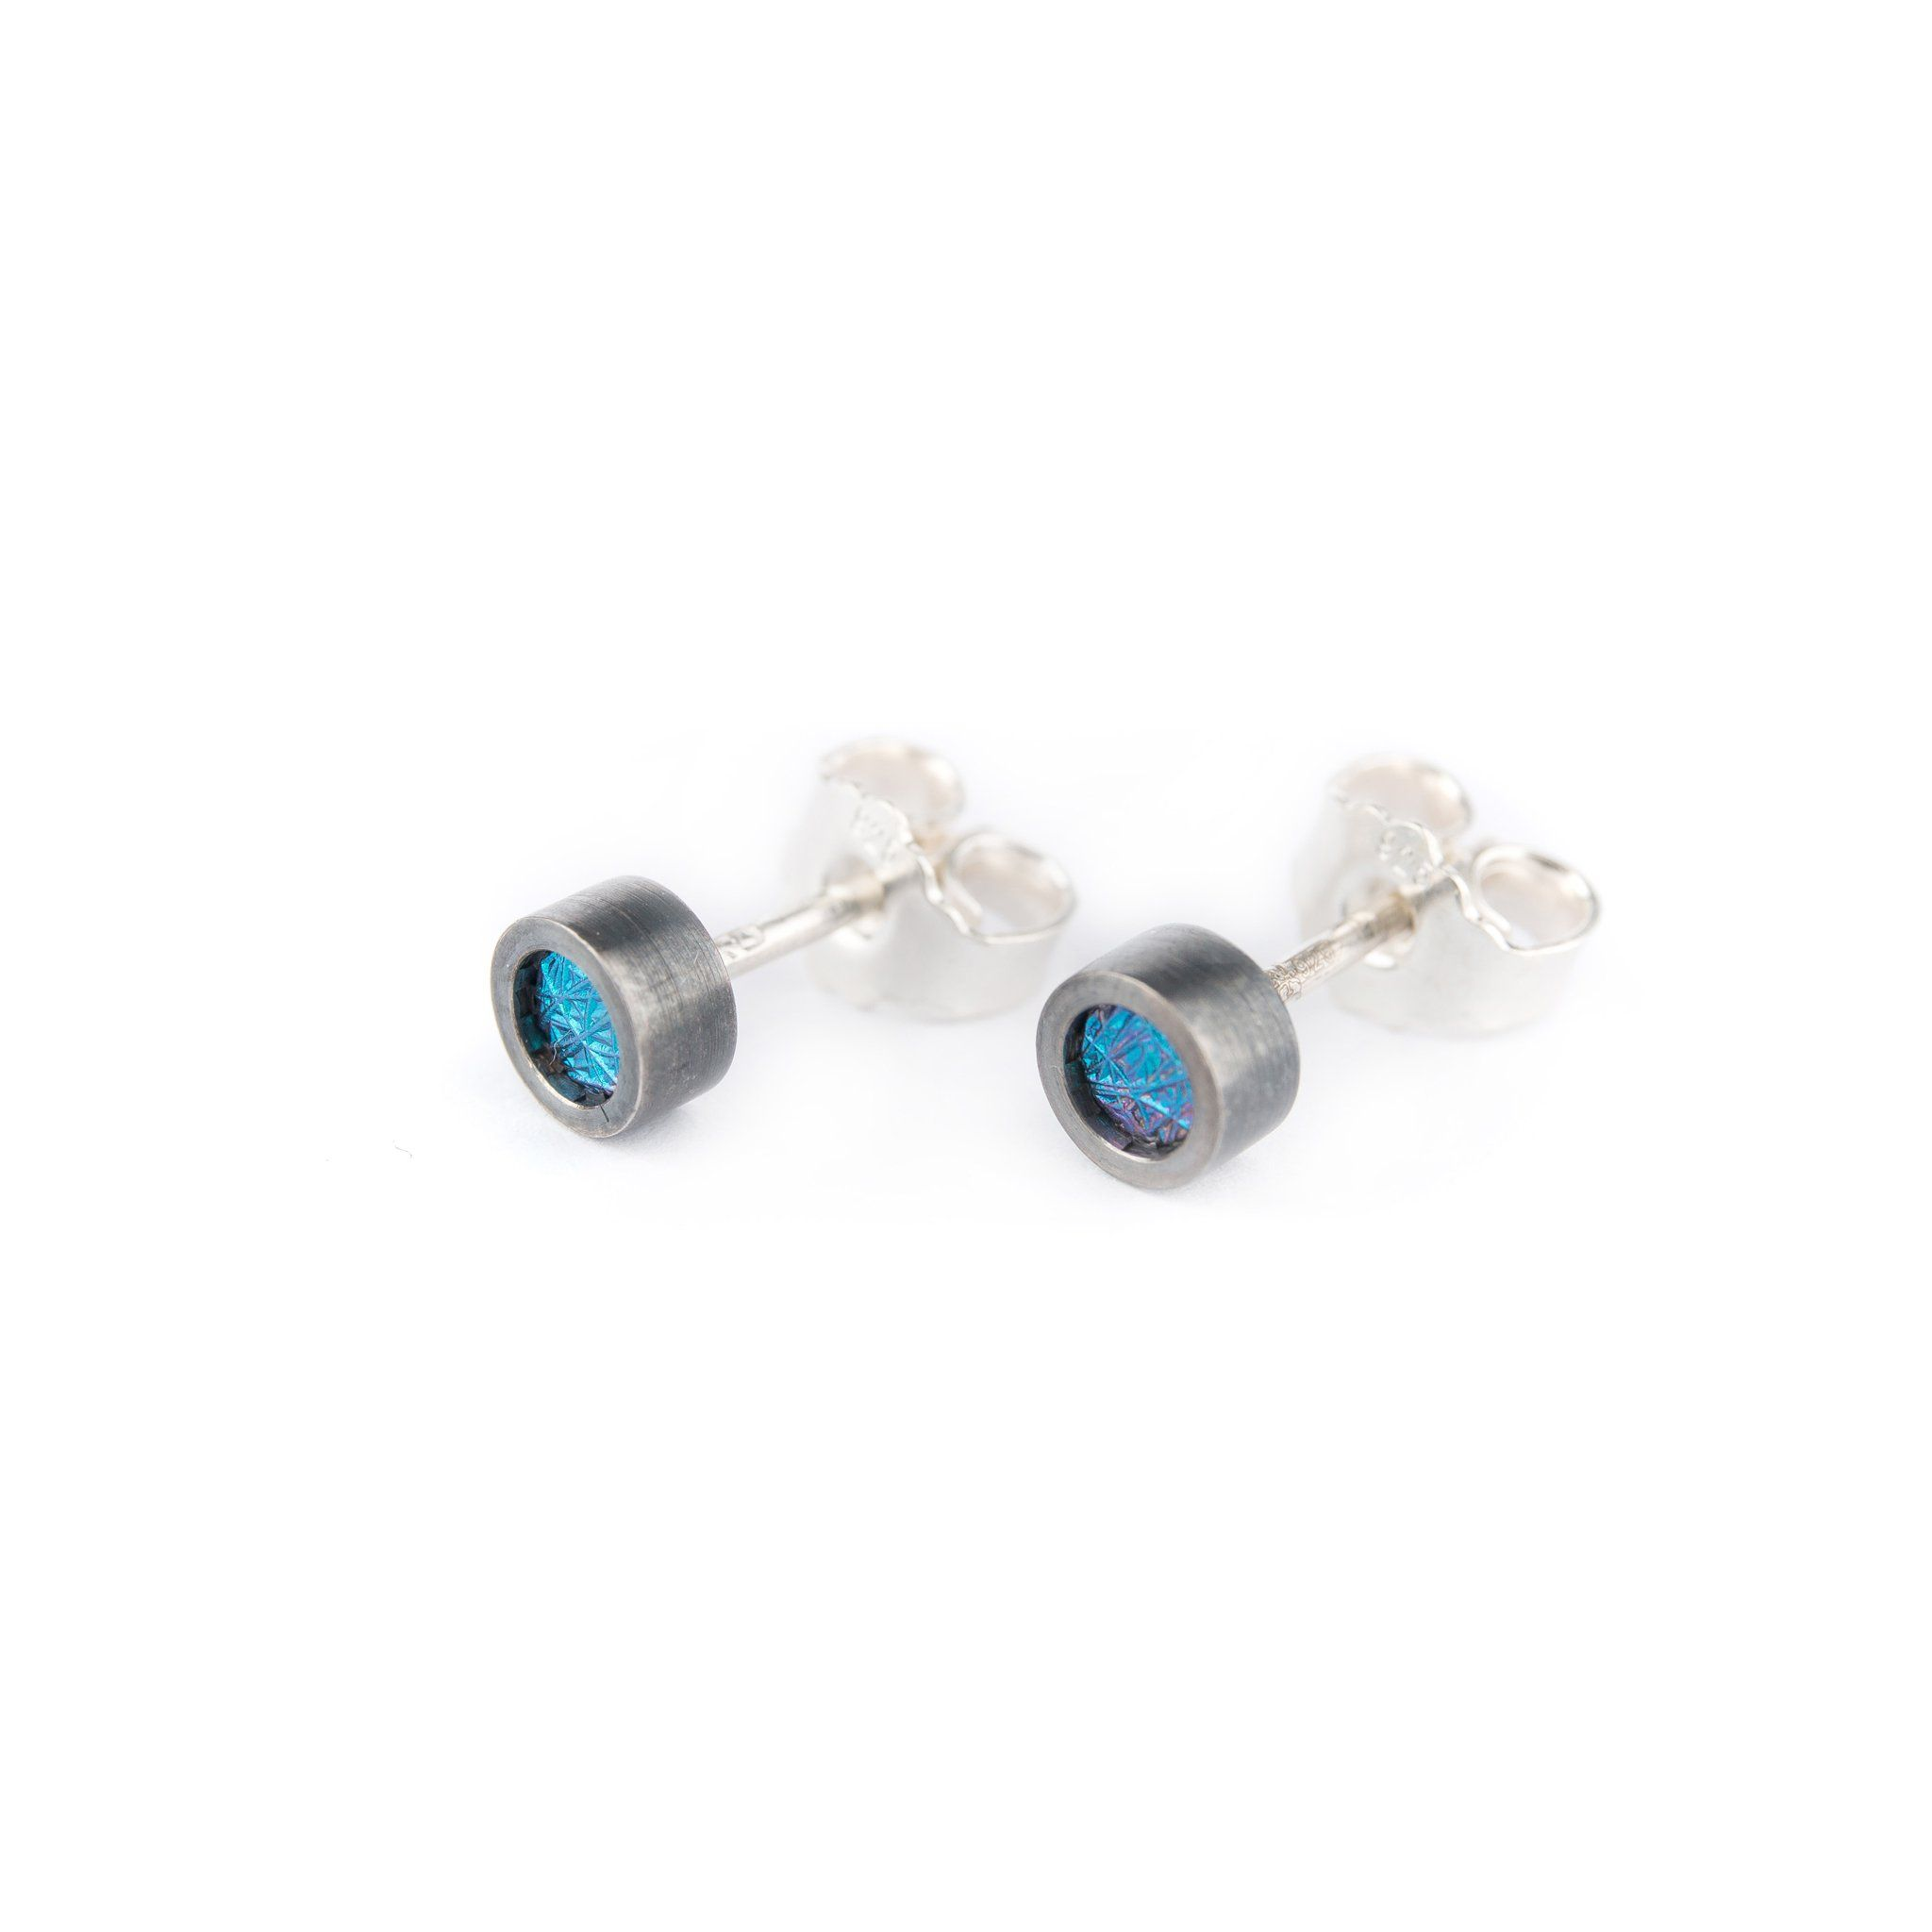 83f77774d Earrings - Oxidised Silver Studs With Green Niobium. Earrings - Oxidised  Silver Studs With Green Niobium